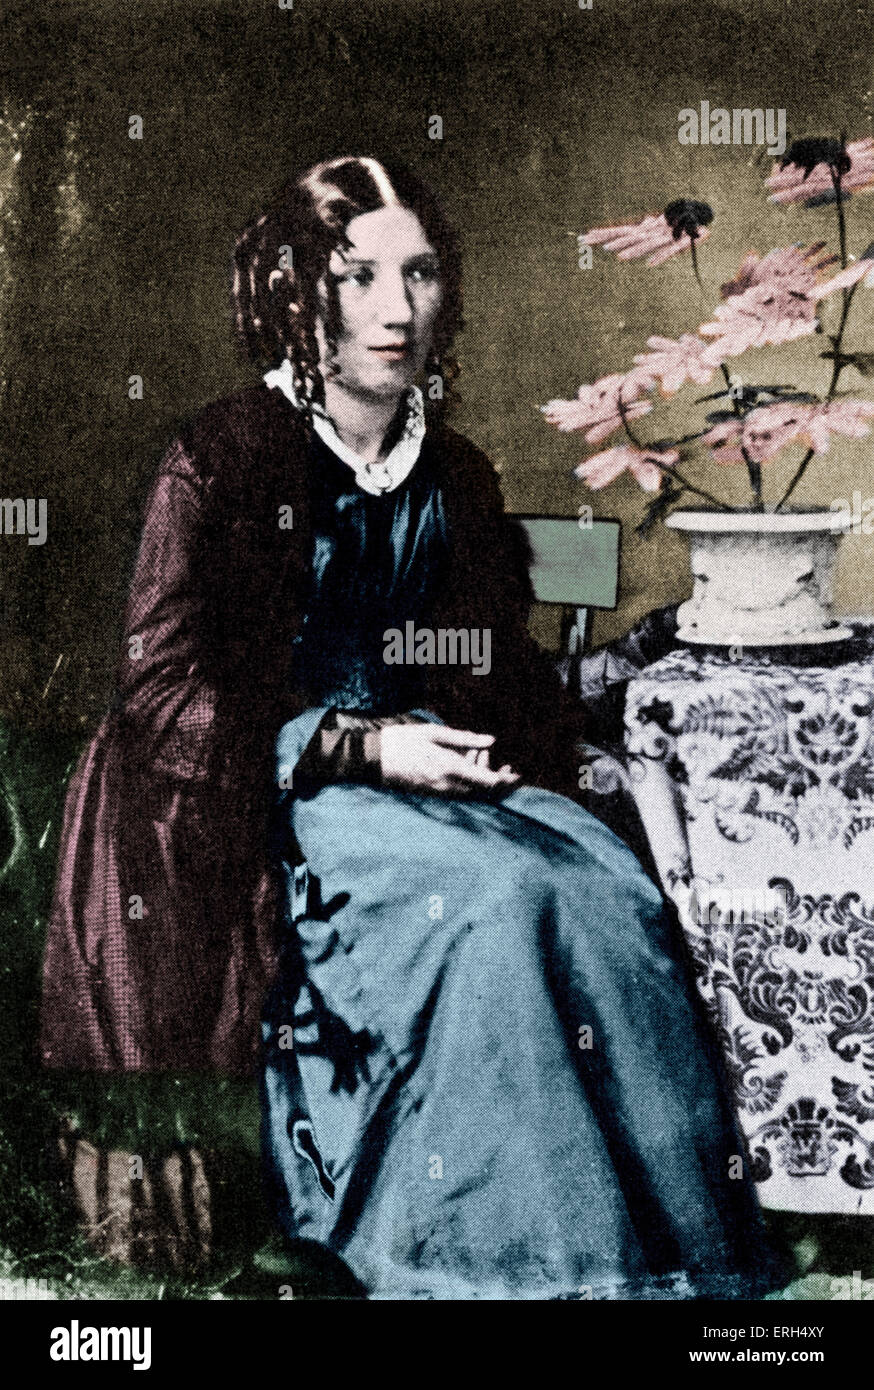 Harriet Beecher Stowe c. 1852, American author and abolitionist. 14 June 1811 – 1 July 1896. Colourised version. - Stock Image